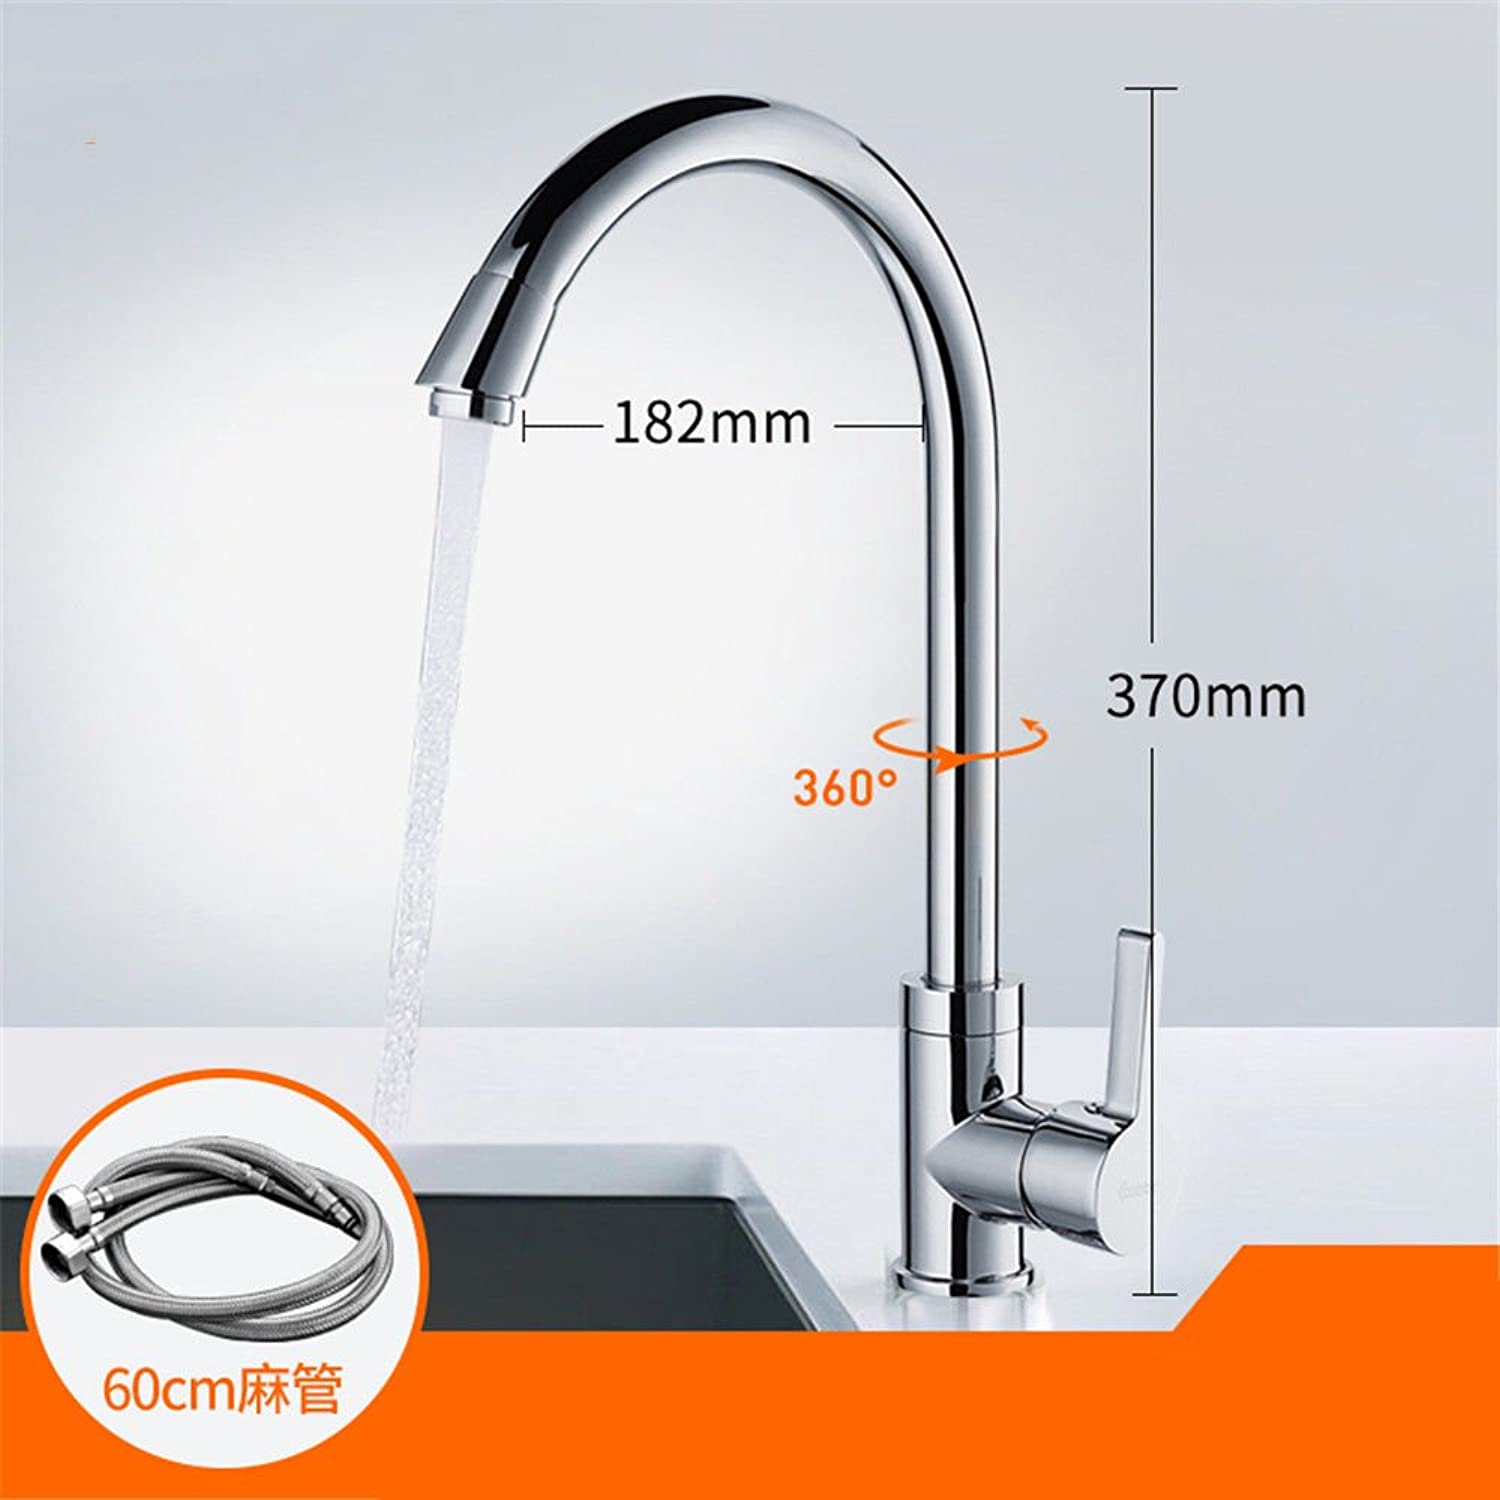 Lpophy Bathroom Sink Mixer Taps Faucet Bath Waterfall Cold and Hot Water Tap for Washroom Bathroom and Kitchen Hot and Cold Plating Single Cold B